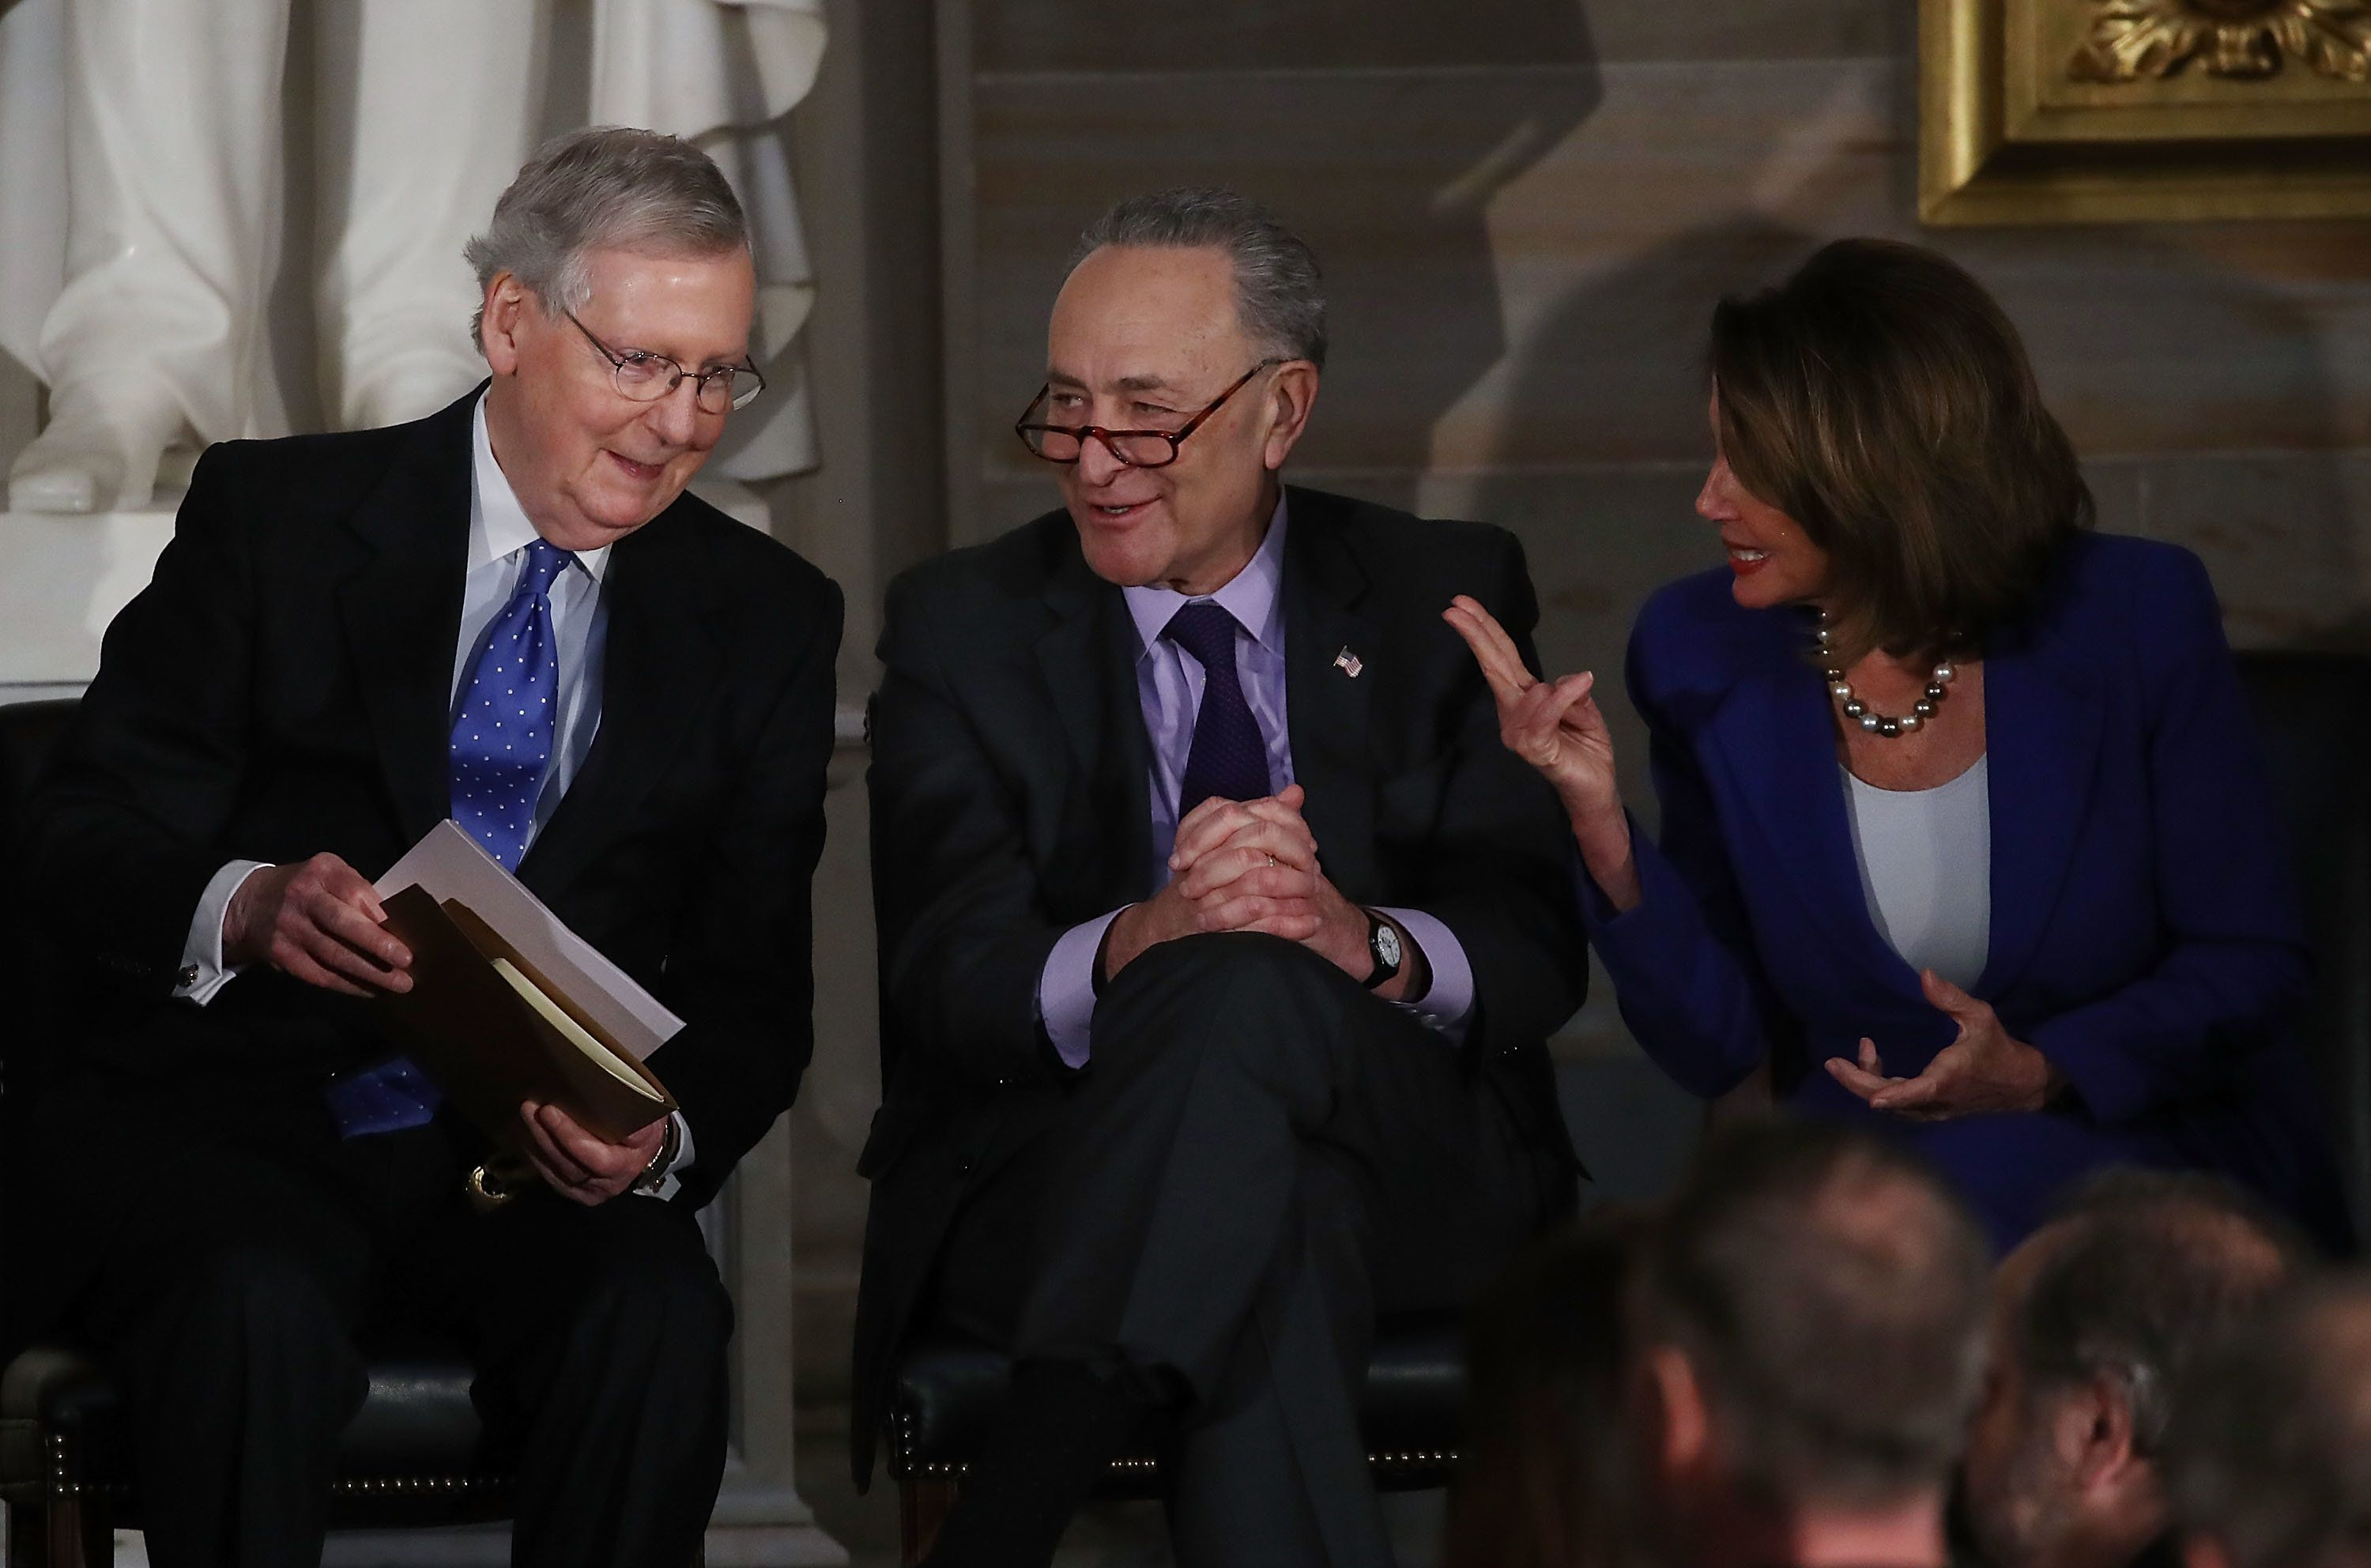 WASHINGTON, DC - JANUARY 17:  (L-R), Senate Majority Leader Mitch McConnell (R-KY), Senate Minority Leader Charles Schumer (D-NY) and House Minority Leader Nancy Pelosi (D-CA), confer during a ceremony awarding former Senate Majority Leader Bob Dole the Congressional Gold Medal at the U.S. Capitol on January 17, 2017 in Washington, DC.  (Photo by Mark Wilson/Getty Images)